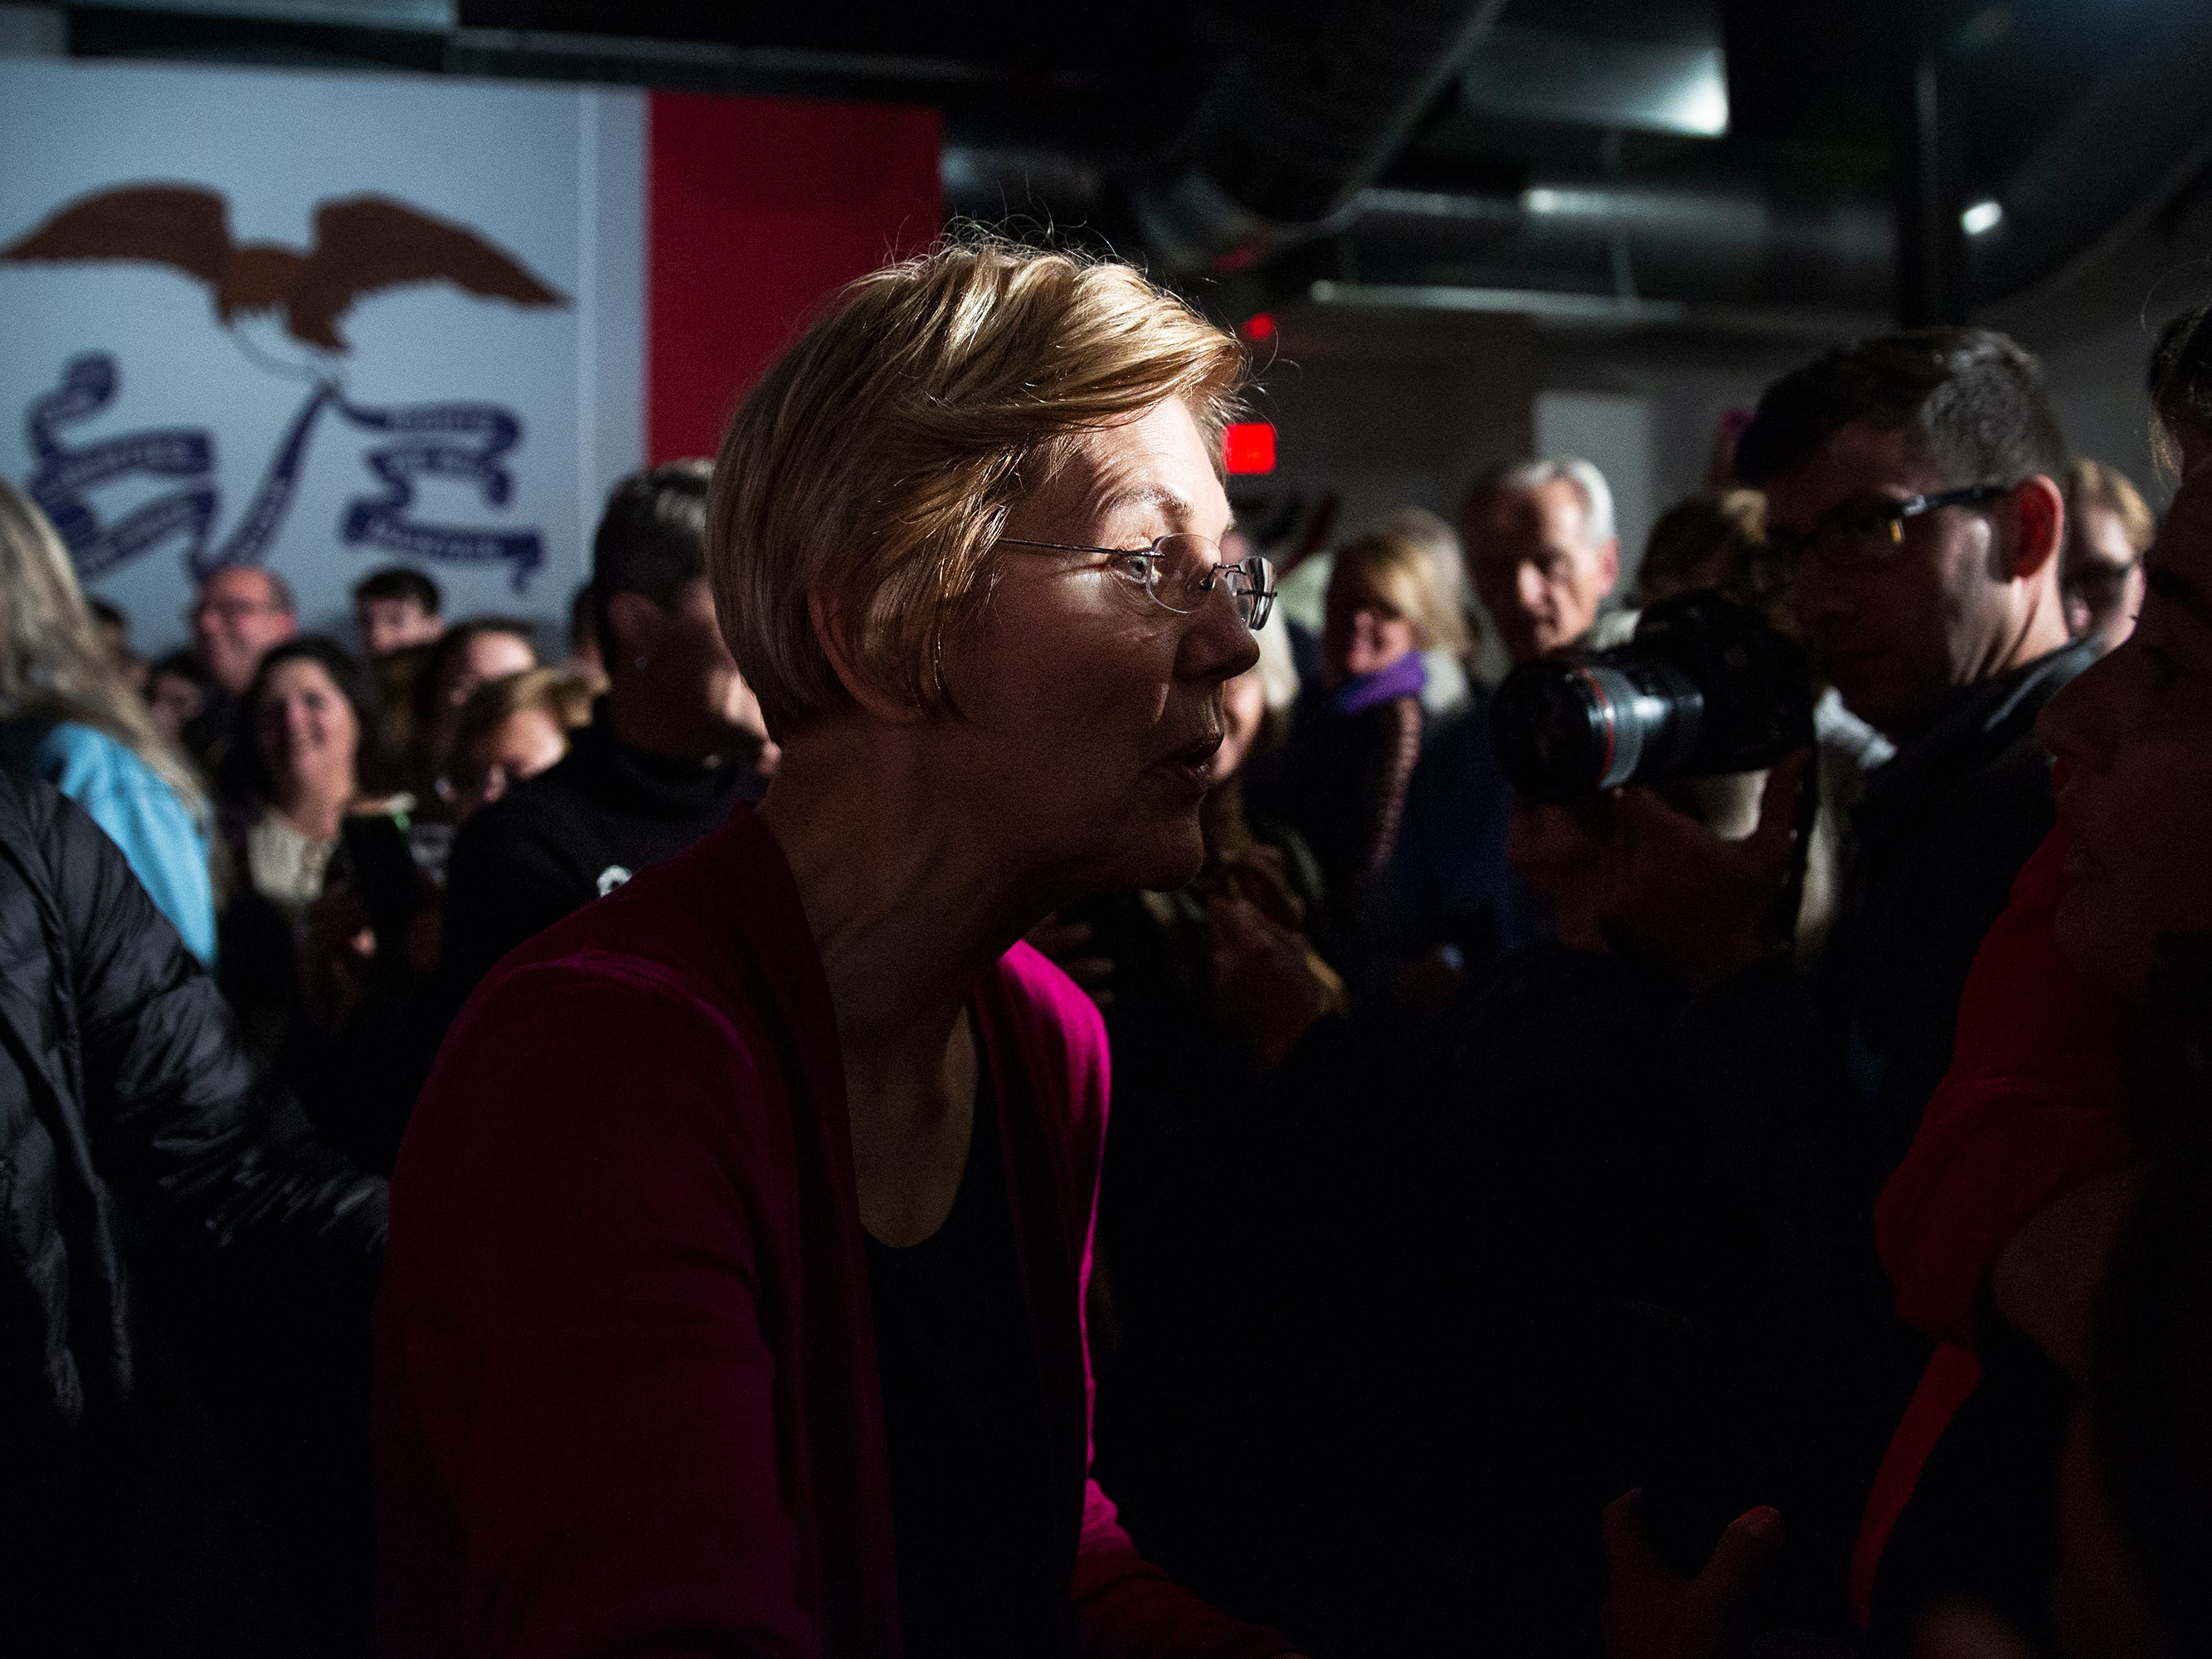 Elizabeth Warren, a potential 2020 presidential candidate, talks with people in the crowd on Saturday, Jan. 5, 2019, after speaking in Des Moines. She spent the weekend in Iowa also making stops in Council Bluffs, Sioux City, Storm Lake and Ankeny.